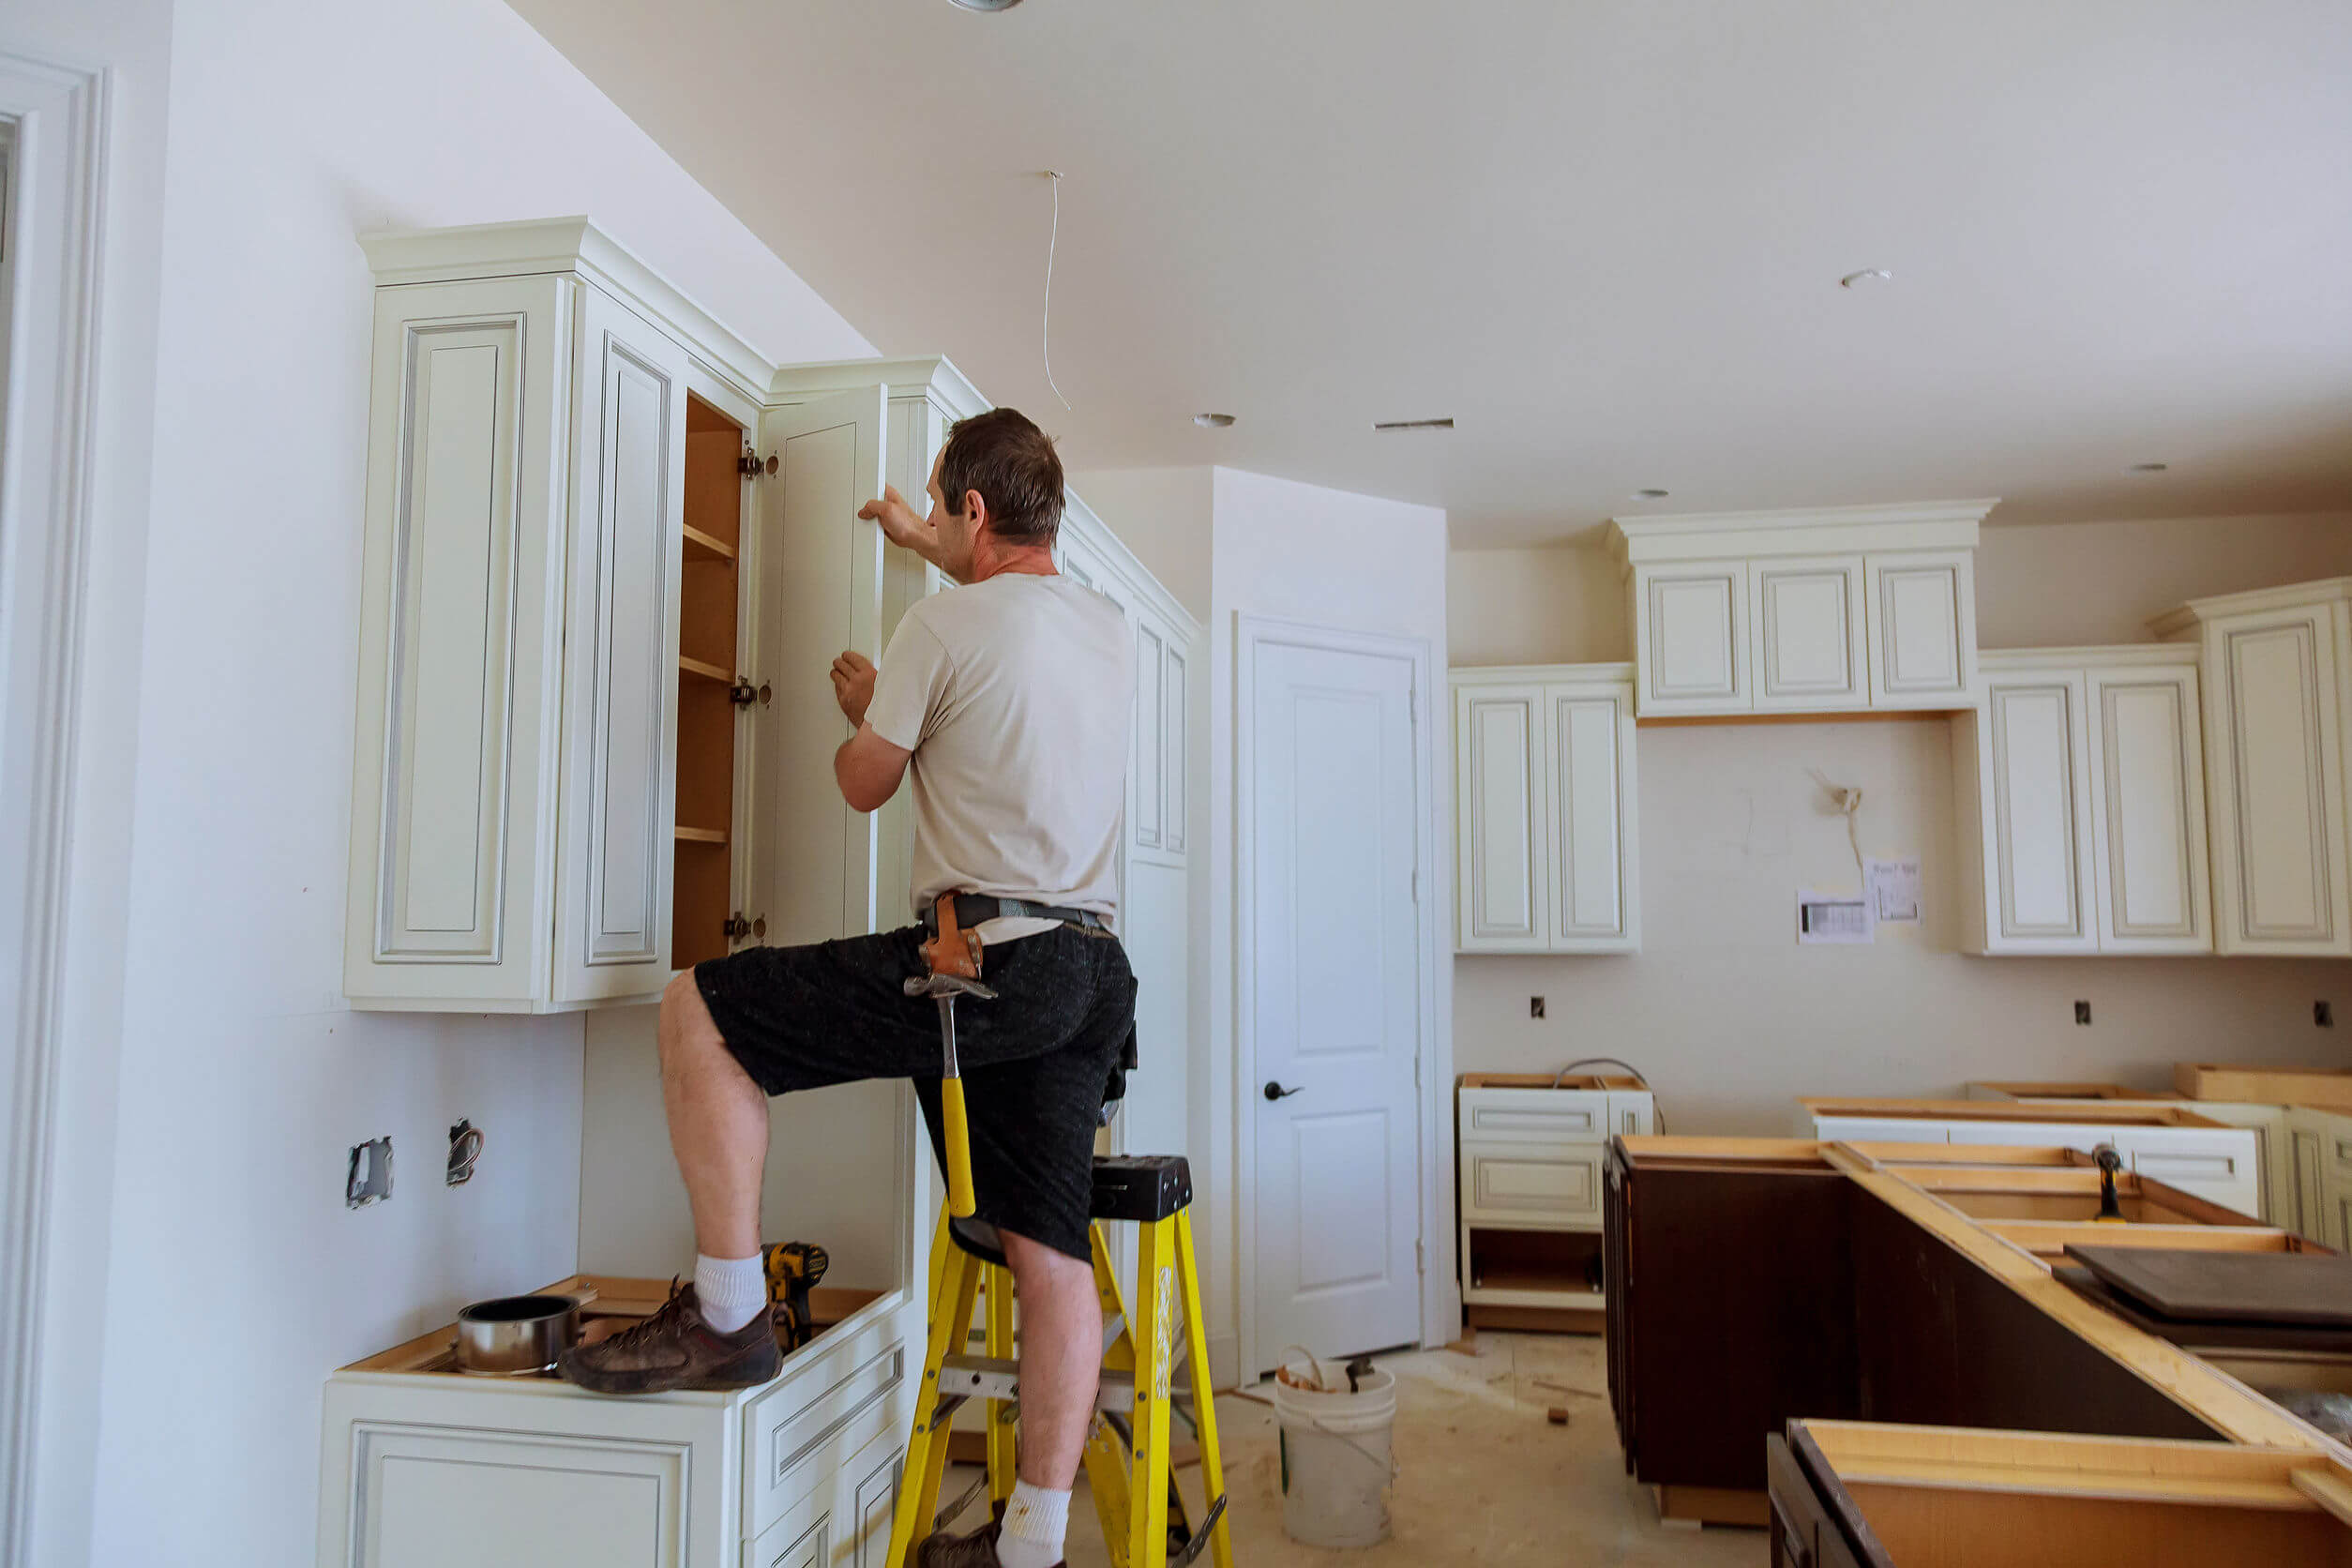 Installation of kitchen. Worker installs doors to kitchen cabinet.